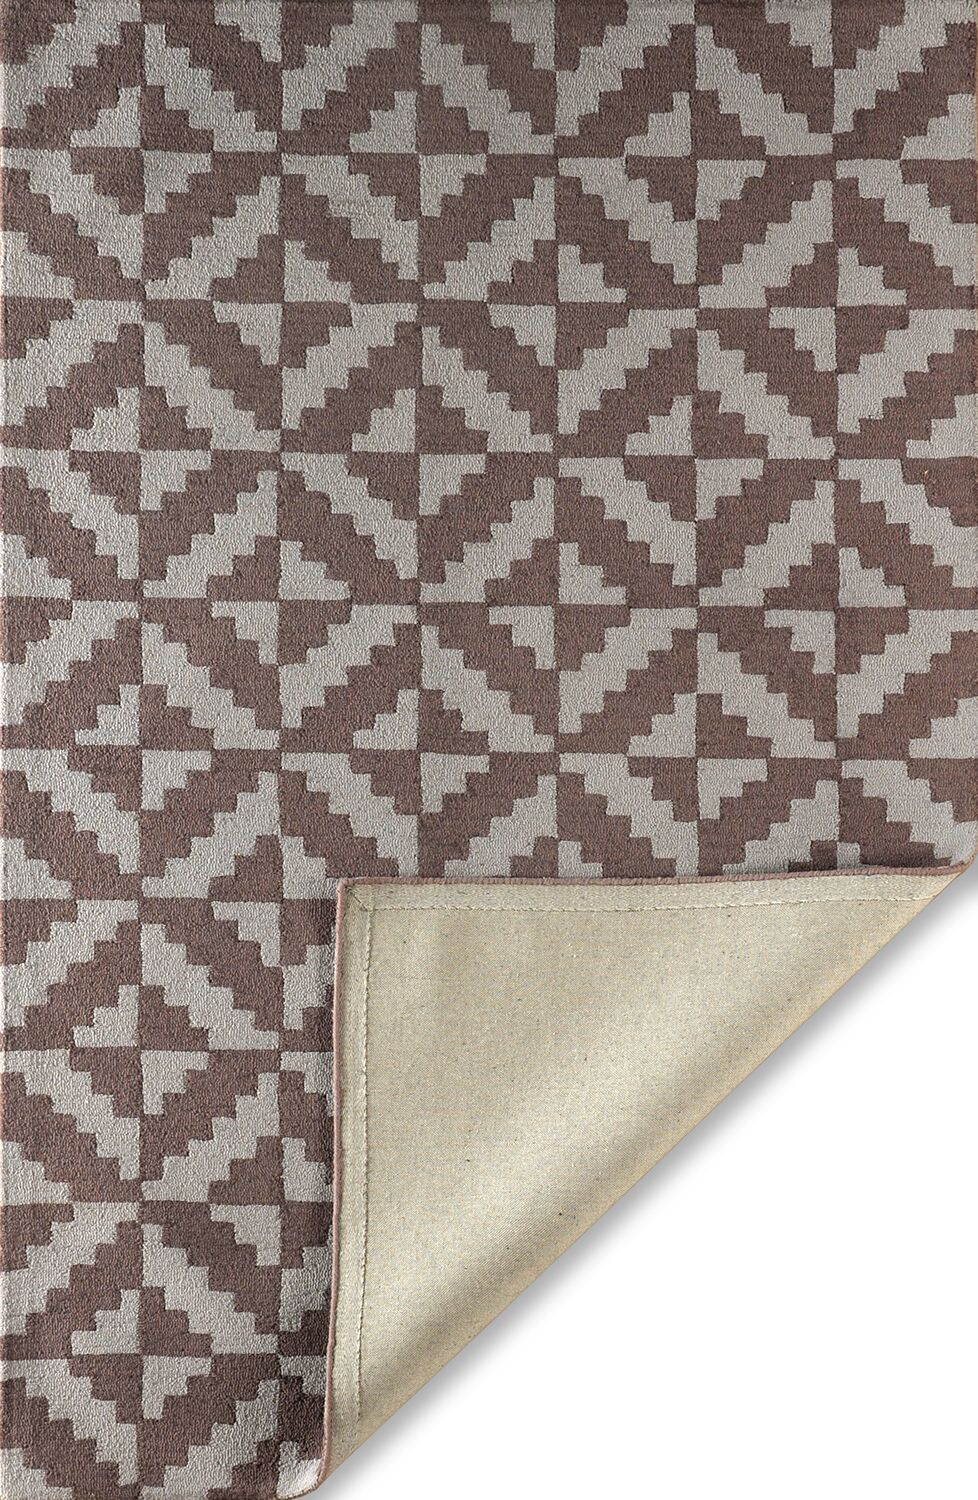 Hisey Hand-Tufted Brown/Gray Area Rug Rug Size: Rectangle 6' x 9'